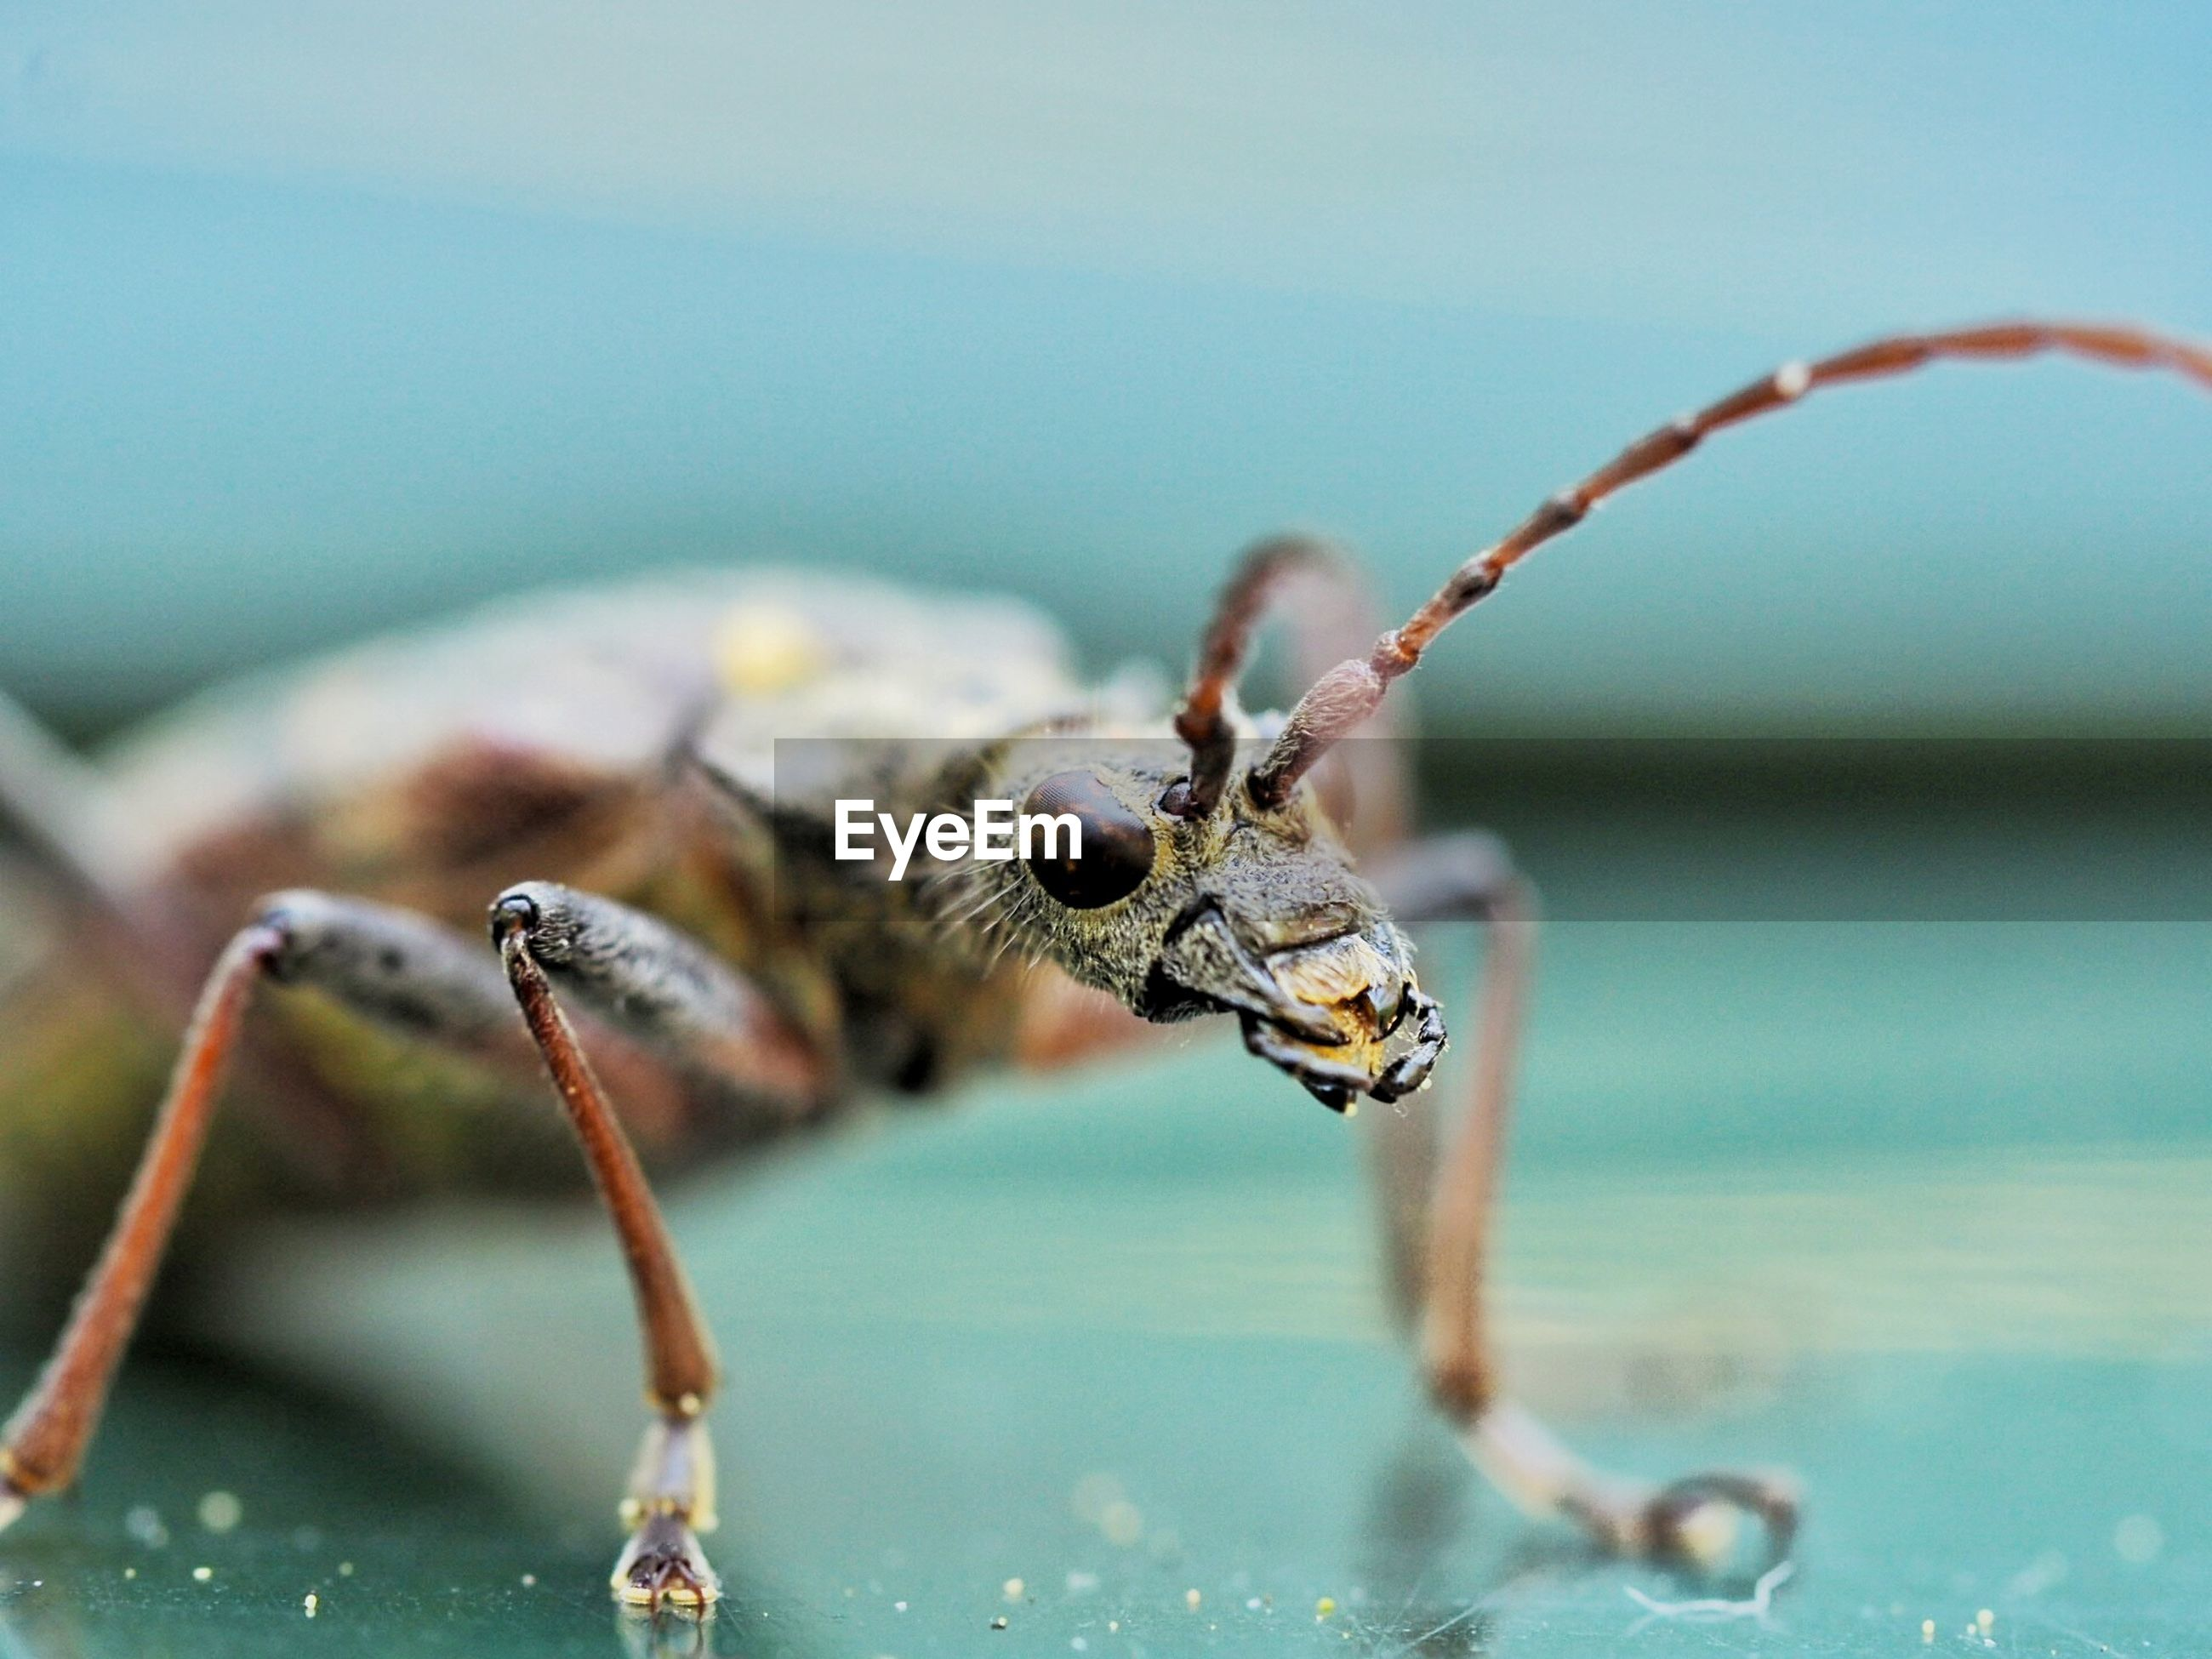 Extreme close-up of insect on table